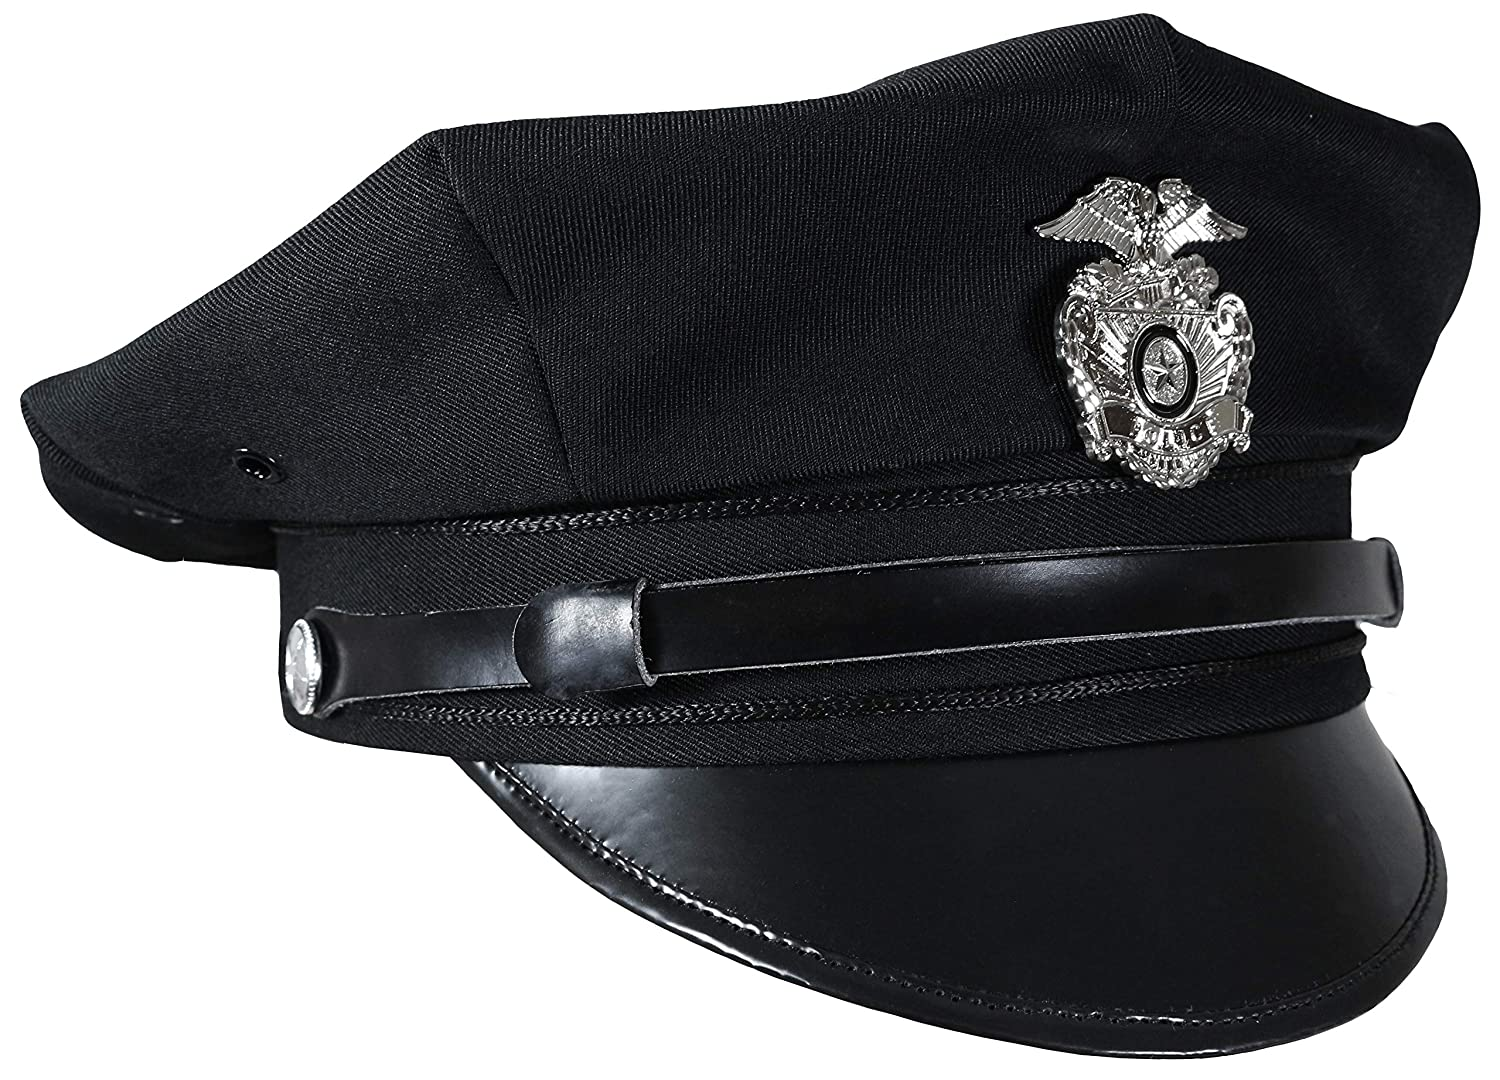 Mil-Tec US Police 8 Point Visor Cap - Black